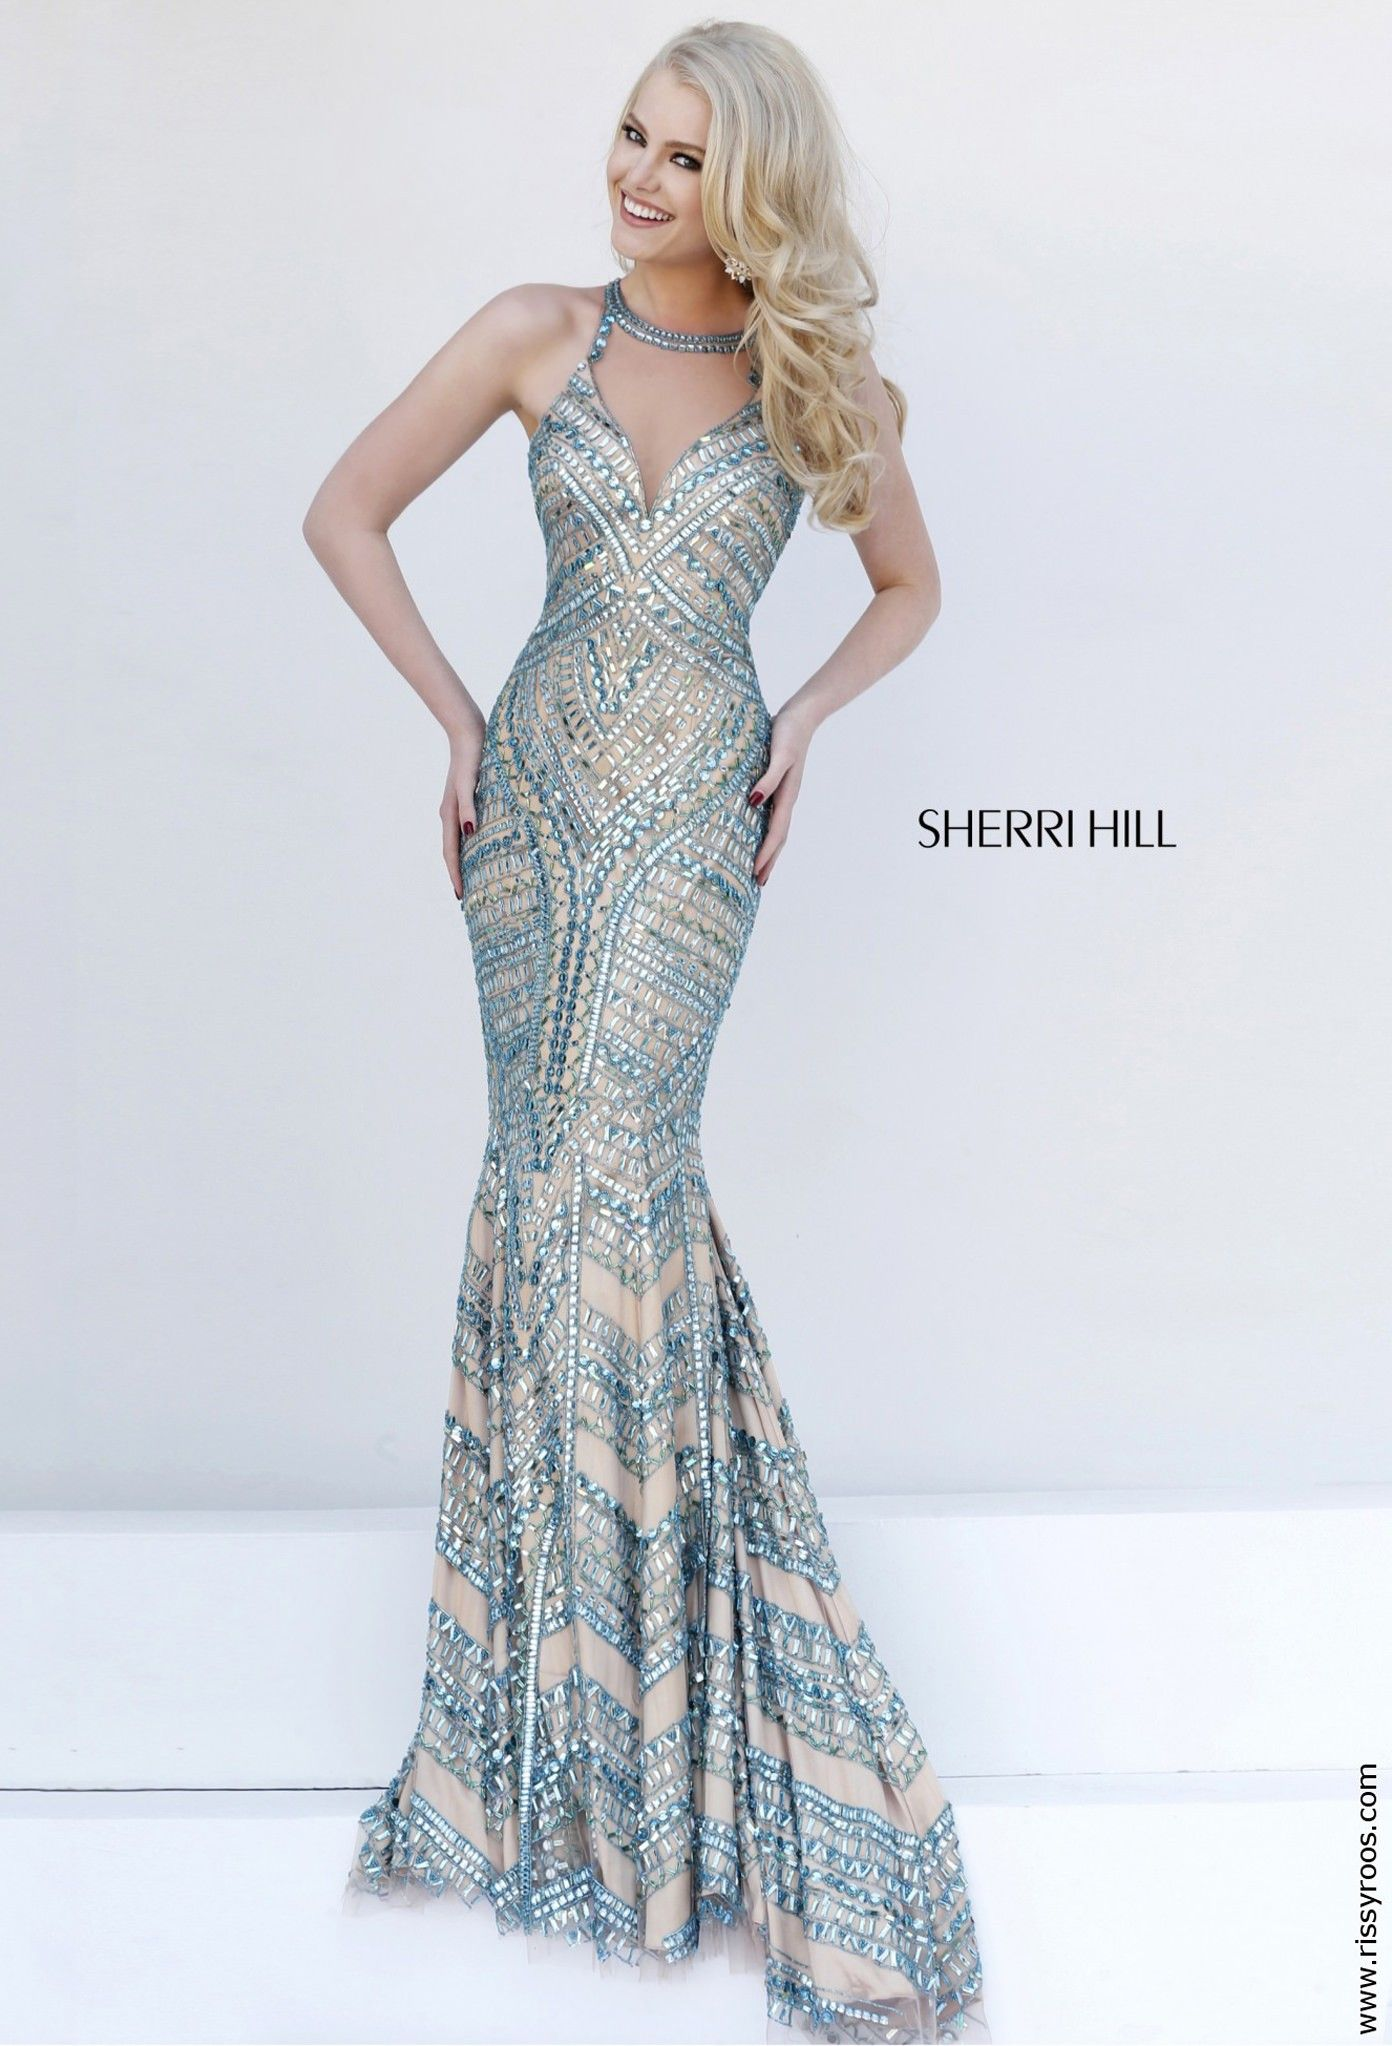 68713d7dcc44 Sherri Hill 1959 Jade Fitted Crystal Beaded Trumpet Gown | Sherri ...